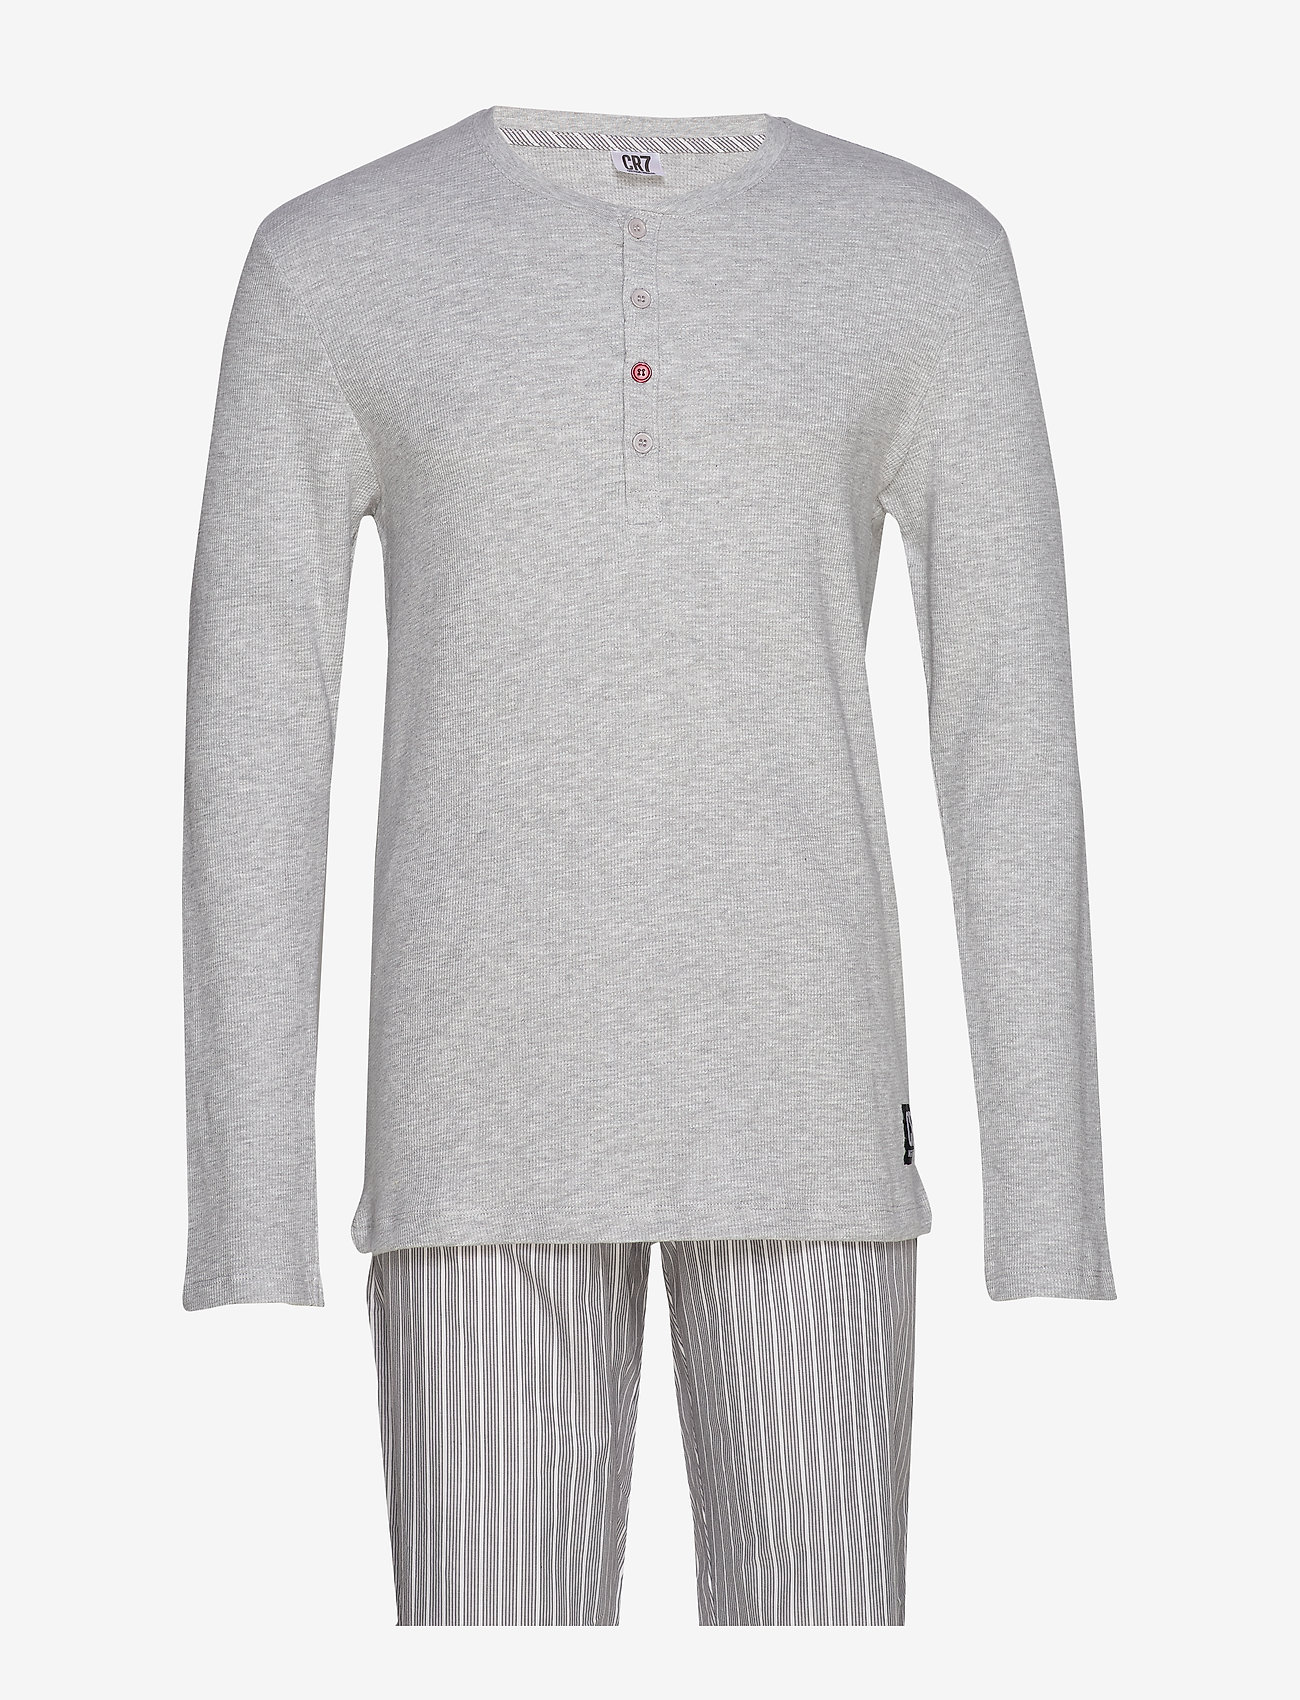 CR7 - CR7 Mens pyjamas - pyjamas - grey - 0